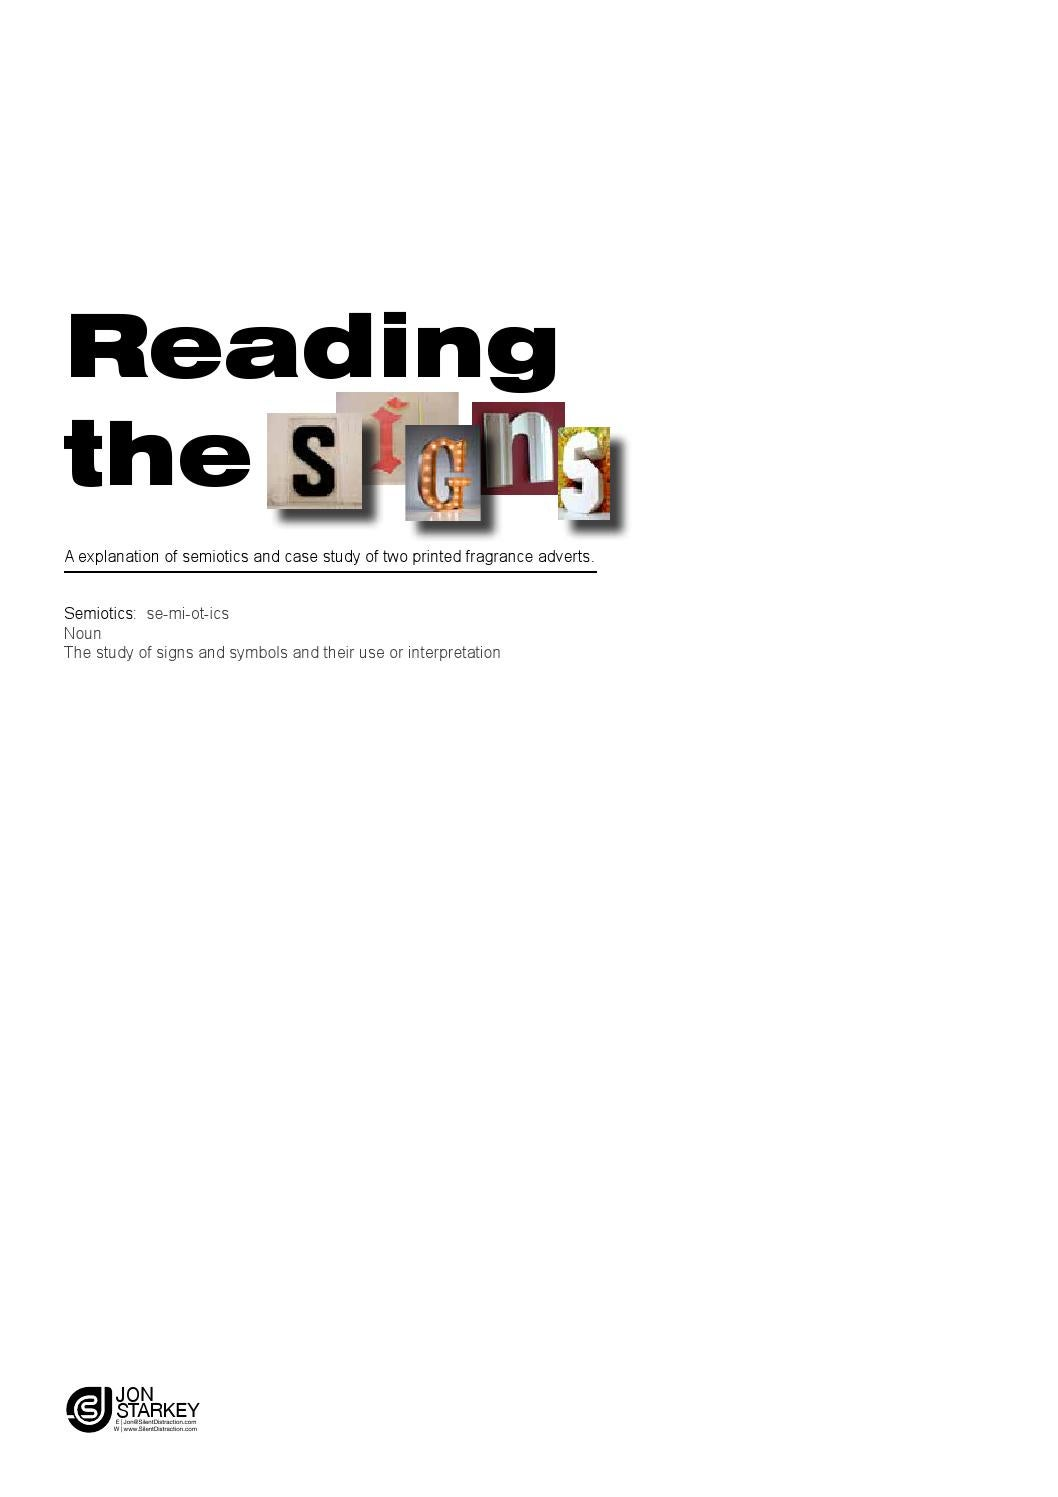 Reading The Signs Semiotics By Silentdistractiondesign Issuu